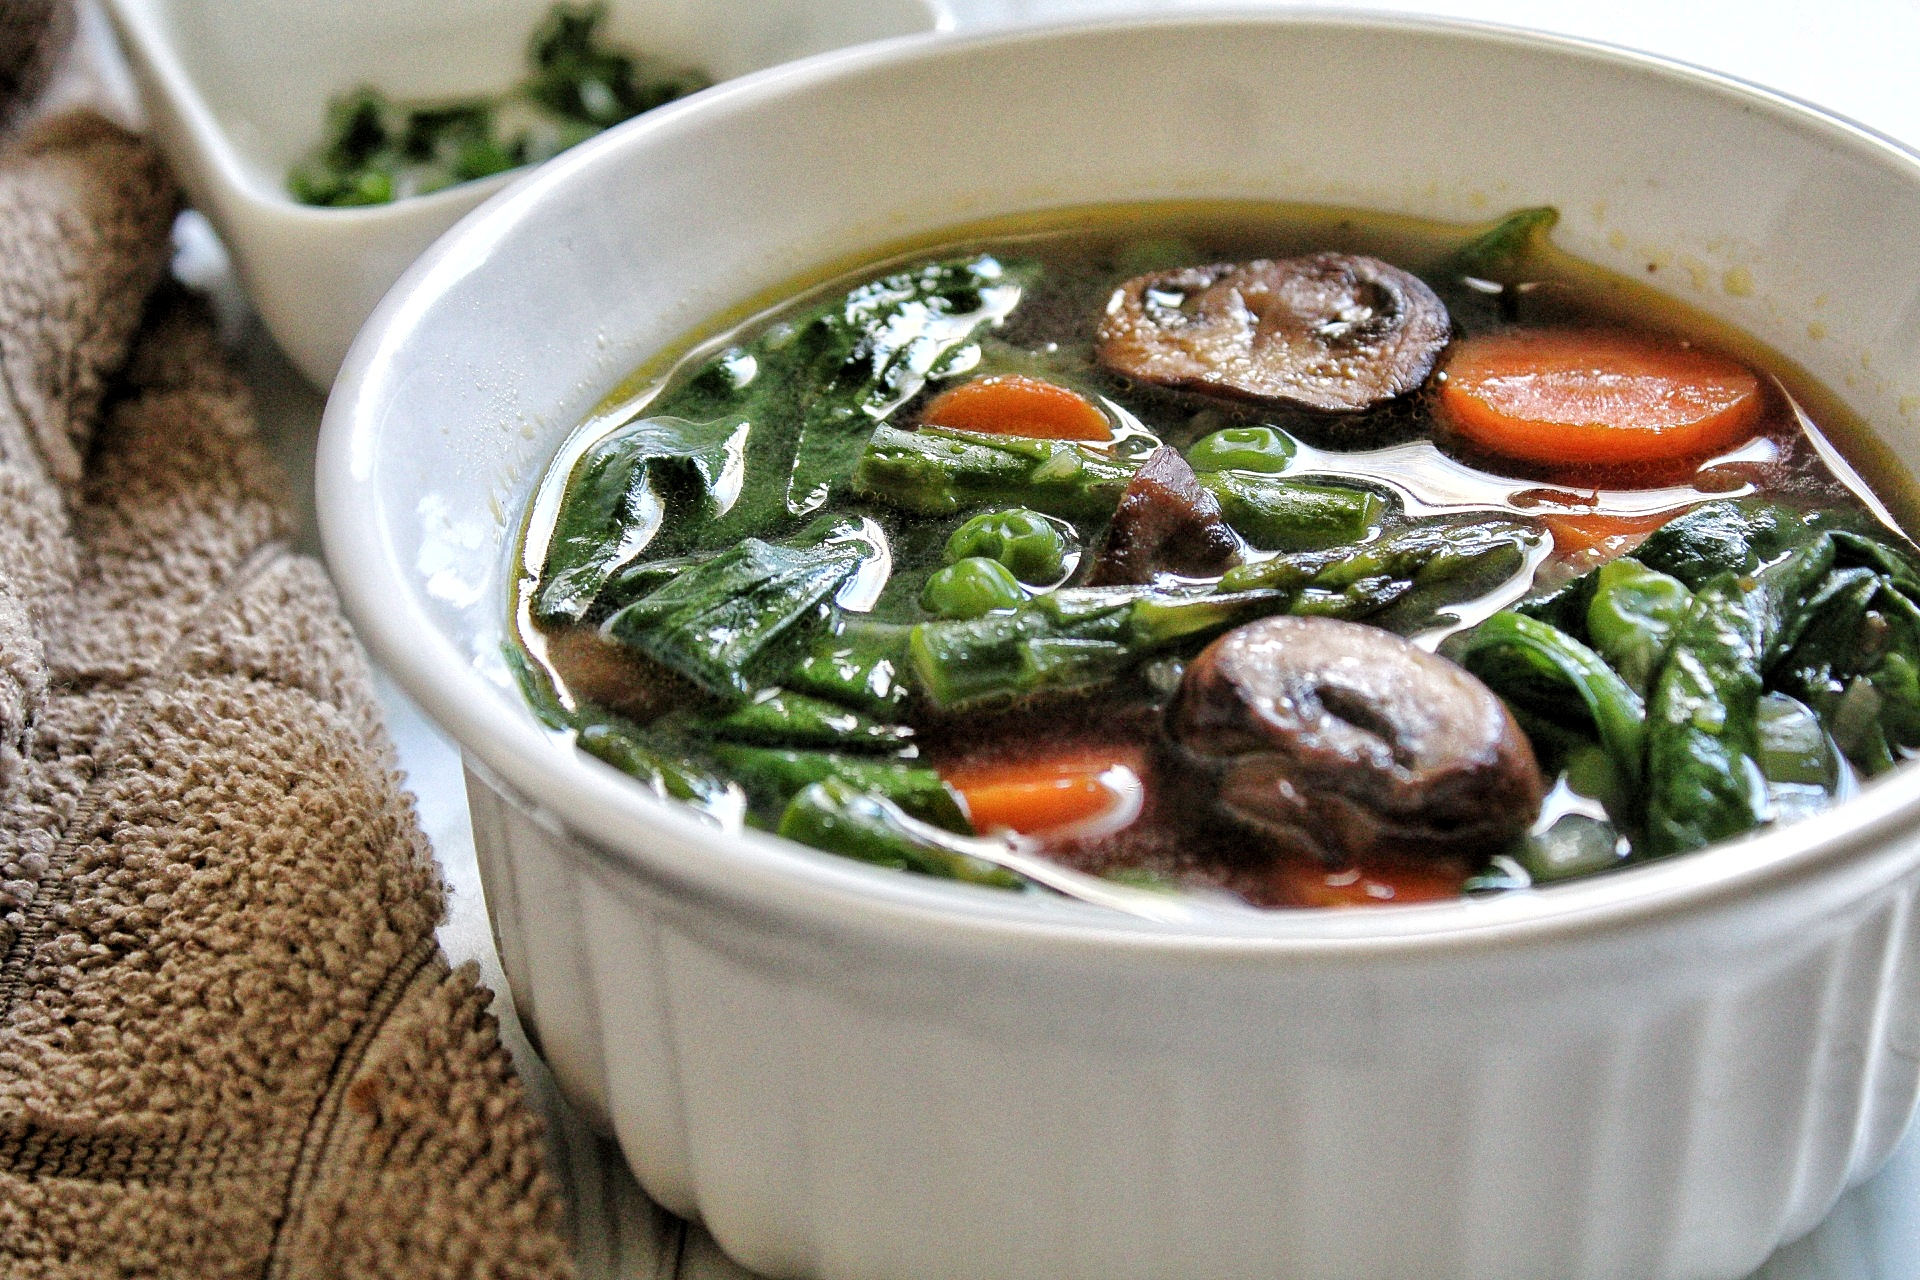 Spring soup with sliced carrots, mushroom, asparagus, and spinach in a bowl